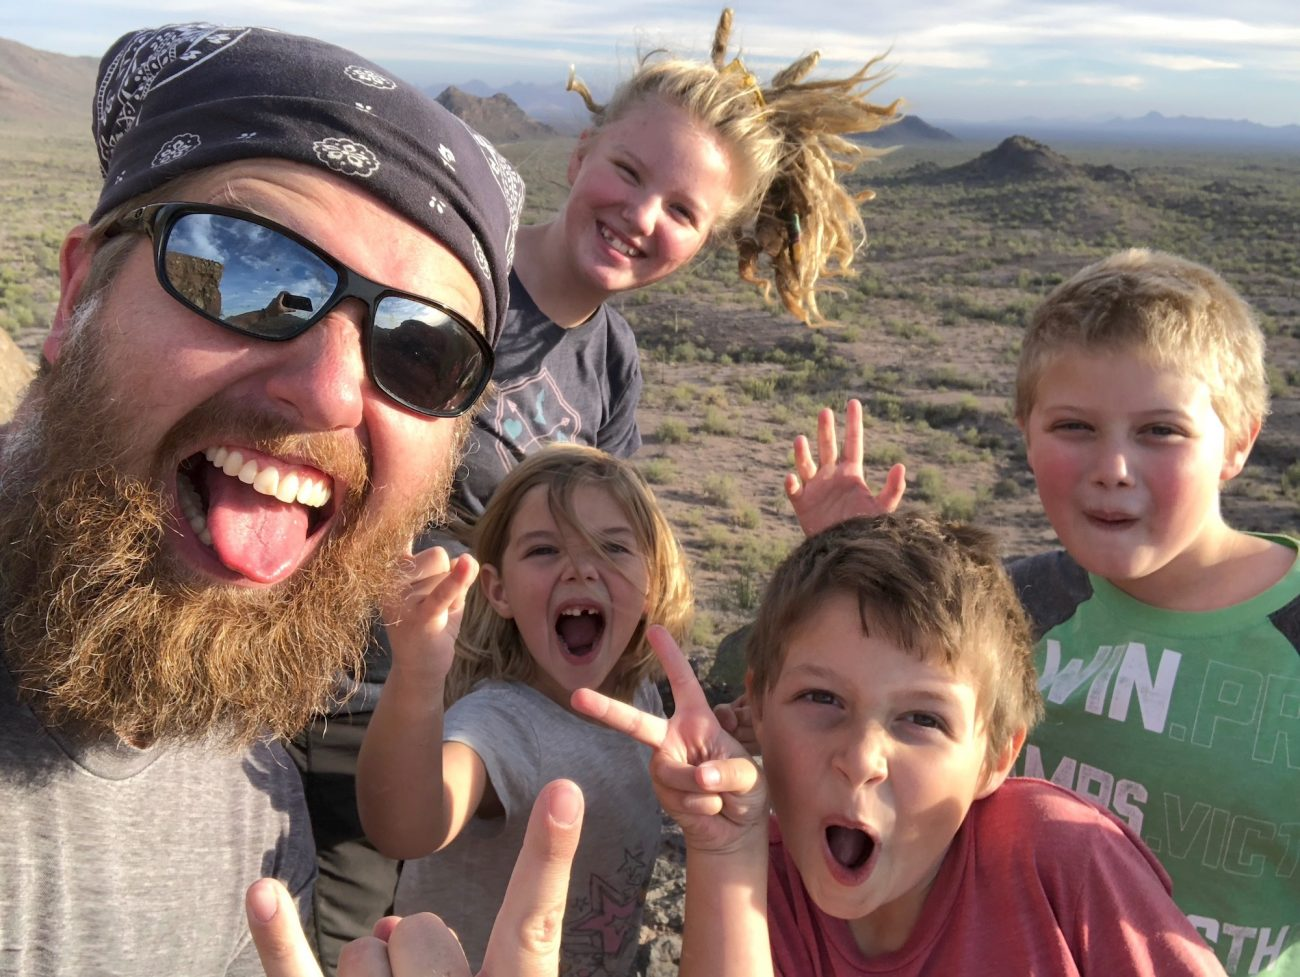 Dad and Kids selfie at the top of butt rock.